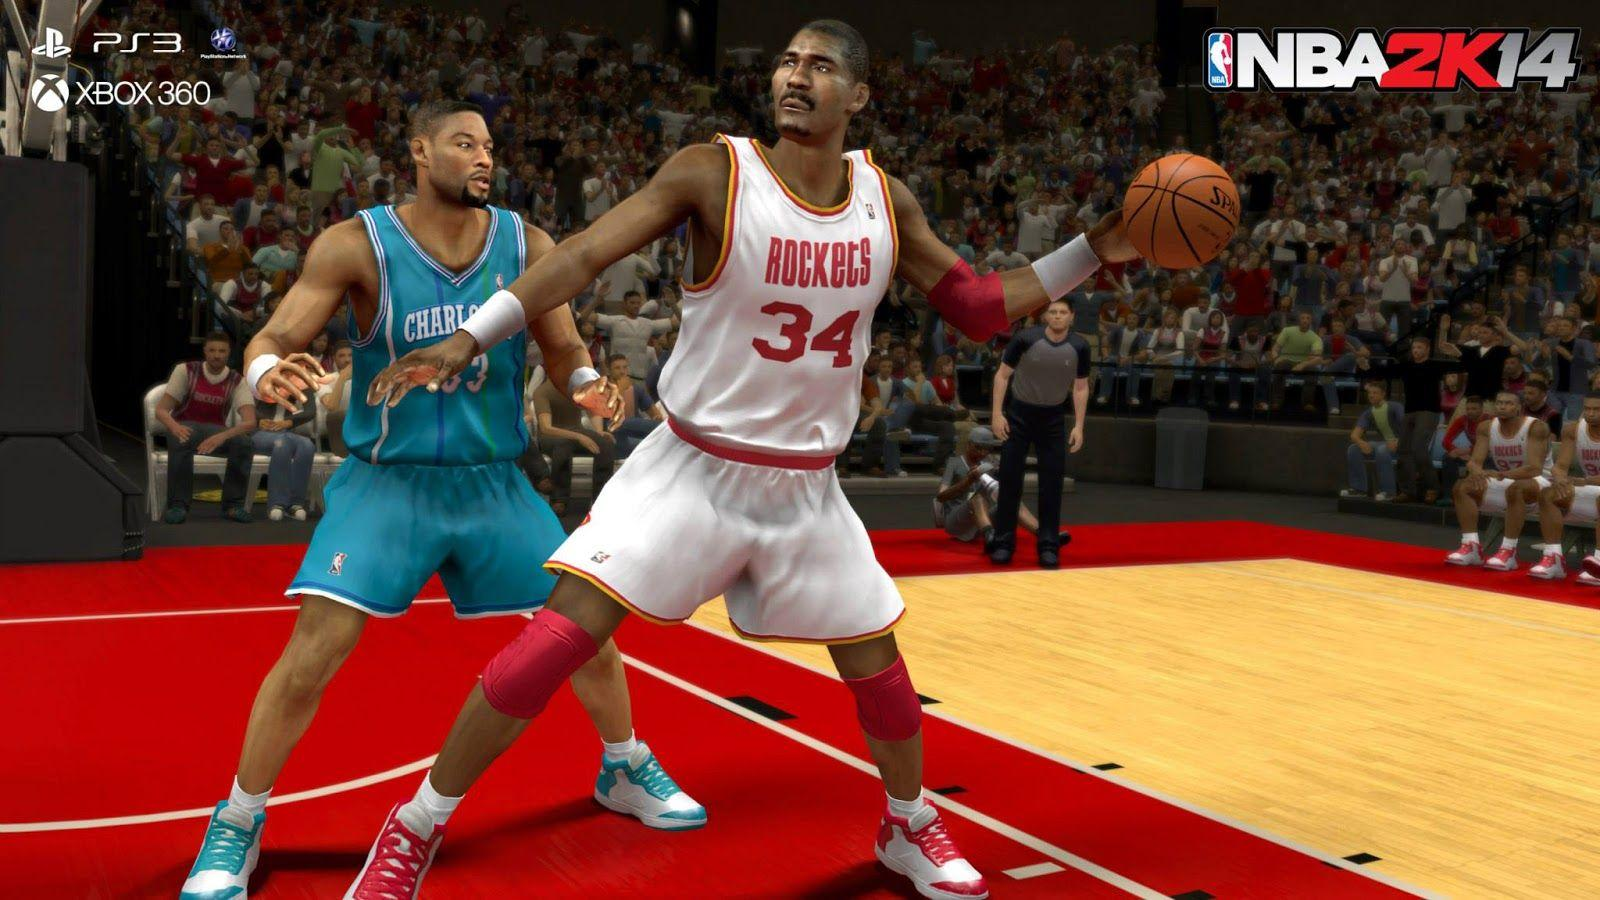 Legends and Historic Teams Back in NBA 2k14 : Michael Jordan Dunk